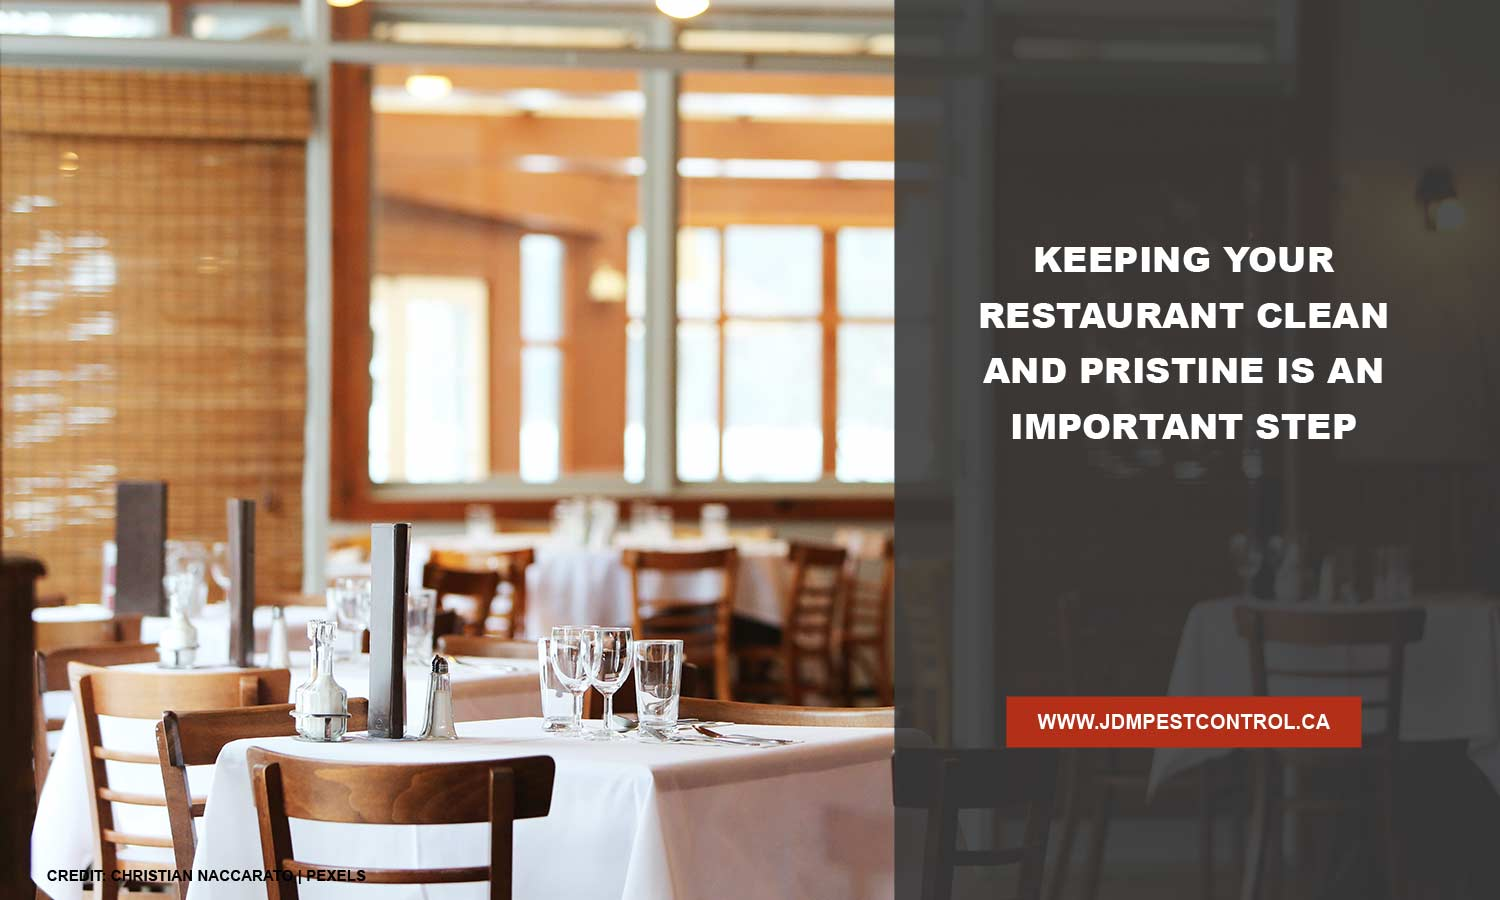 Keeping your restaurant clean and pristine is an important step